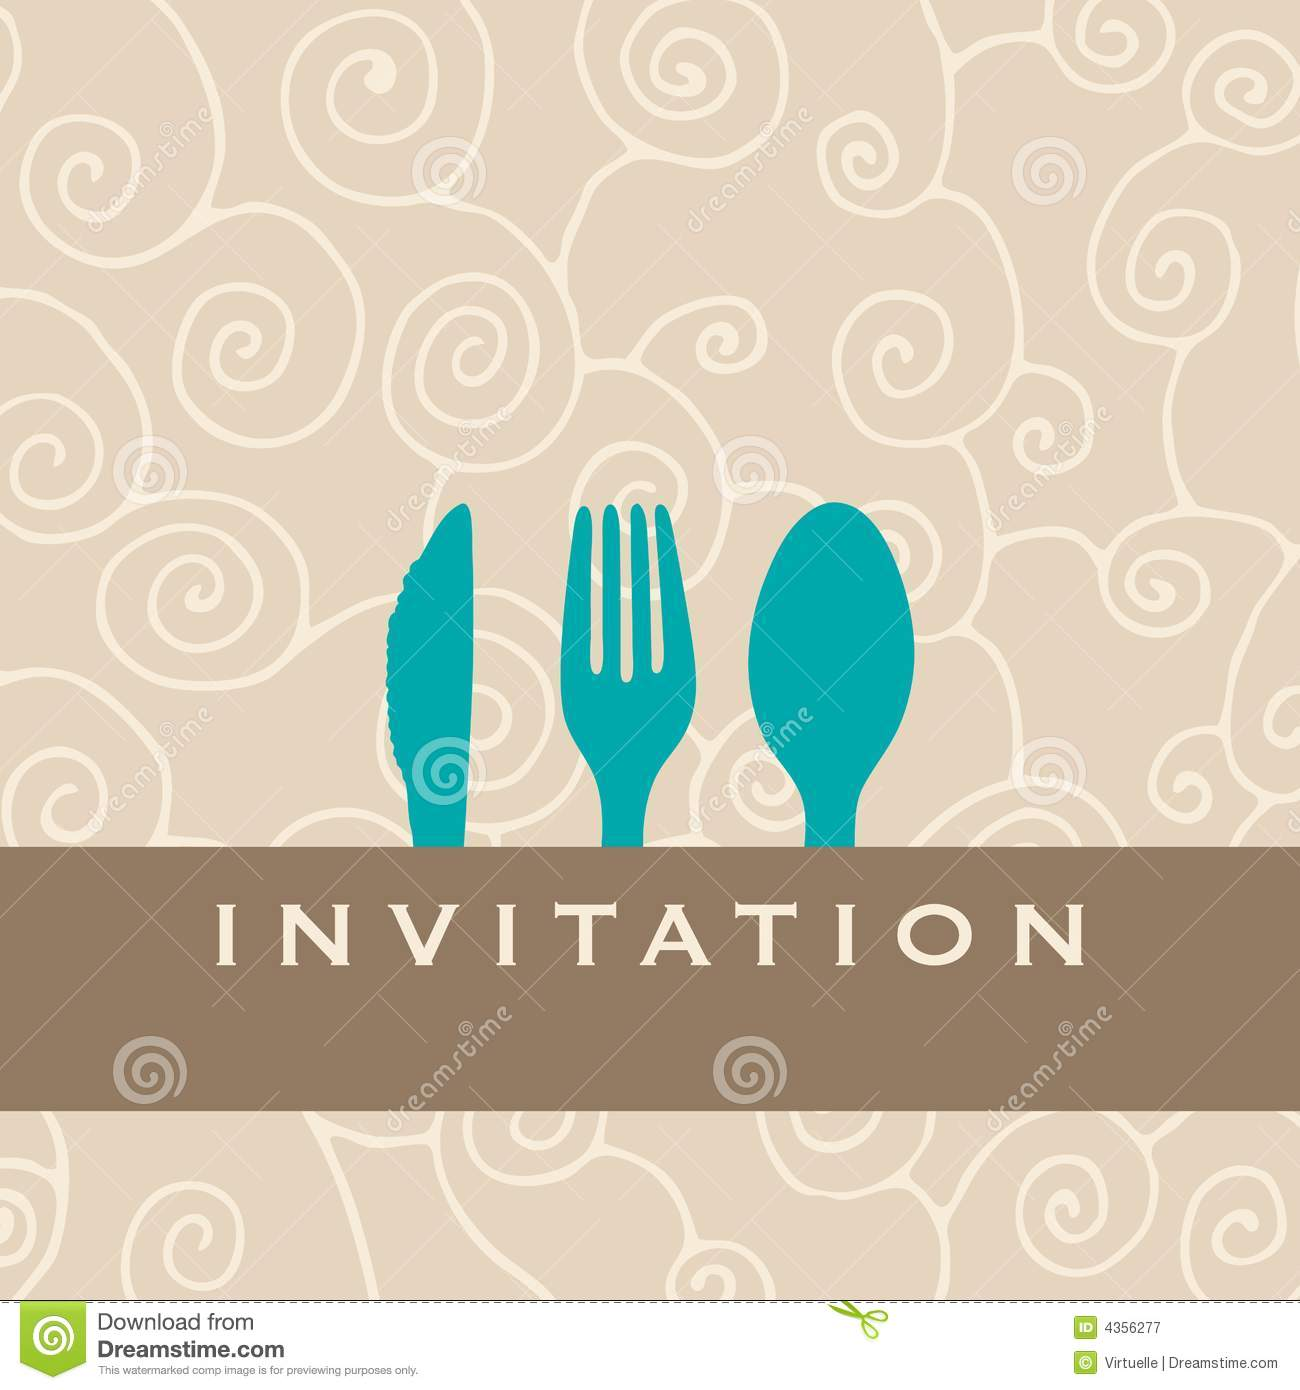 Dinner Invitation Royalty Free Stock Photography Image